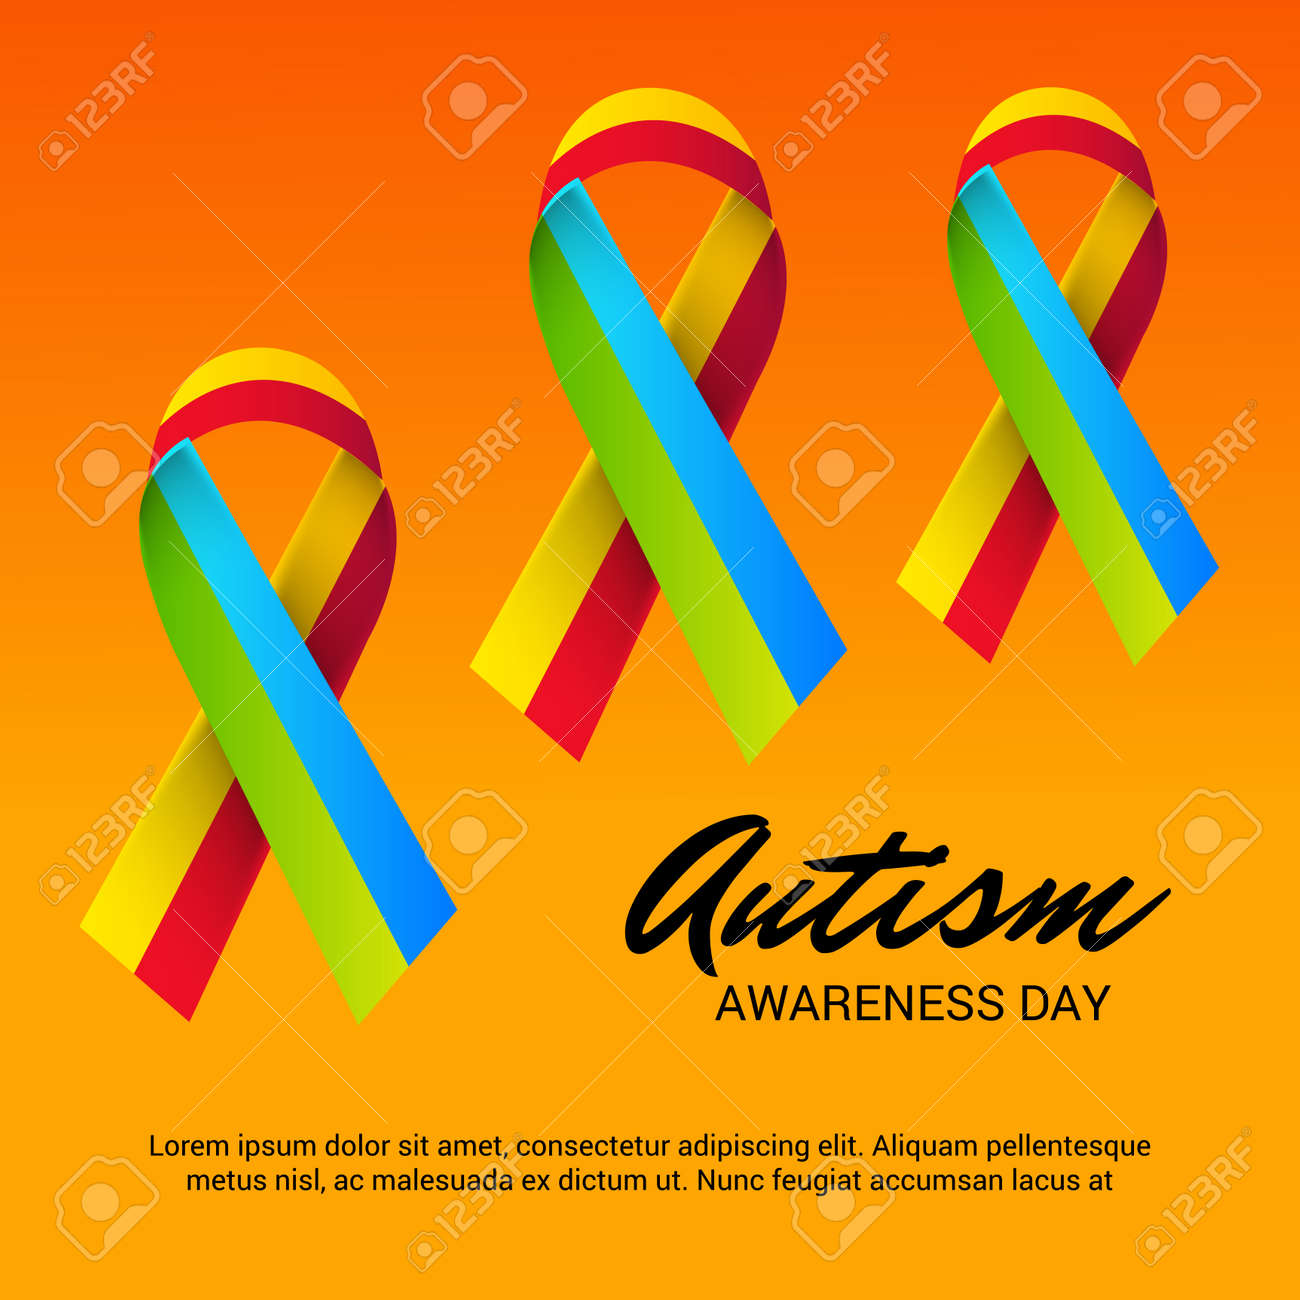 world autism awareness day with colorful ribbons banner royalty